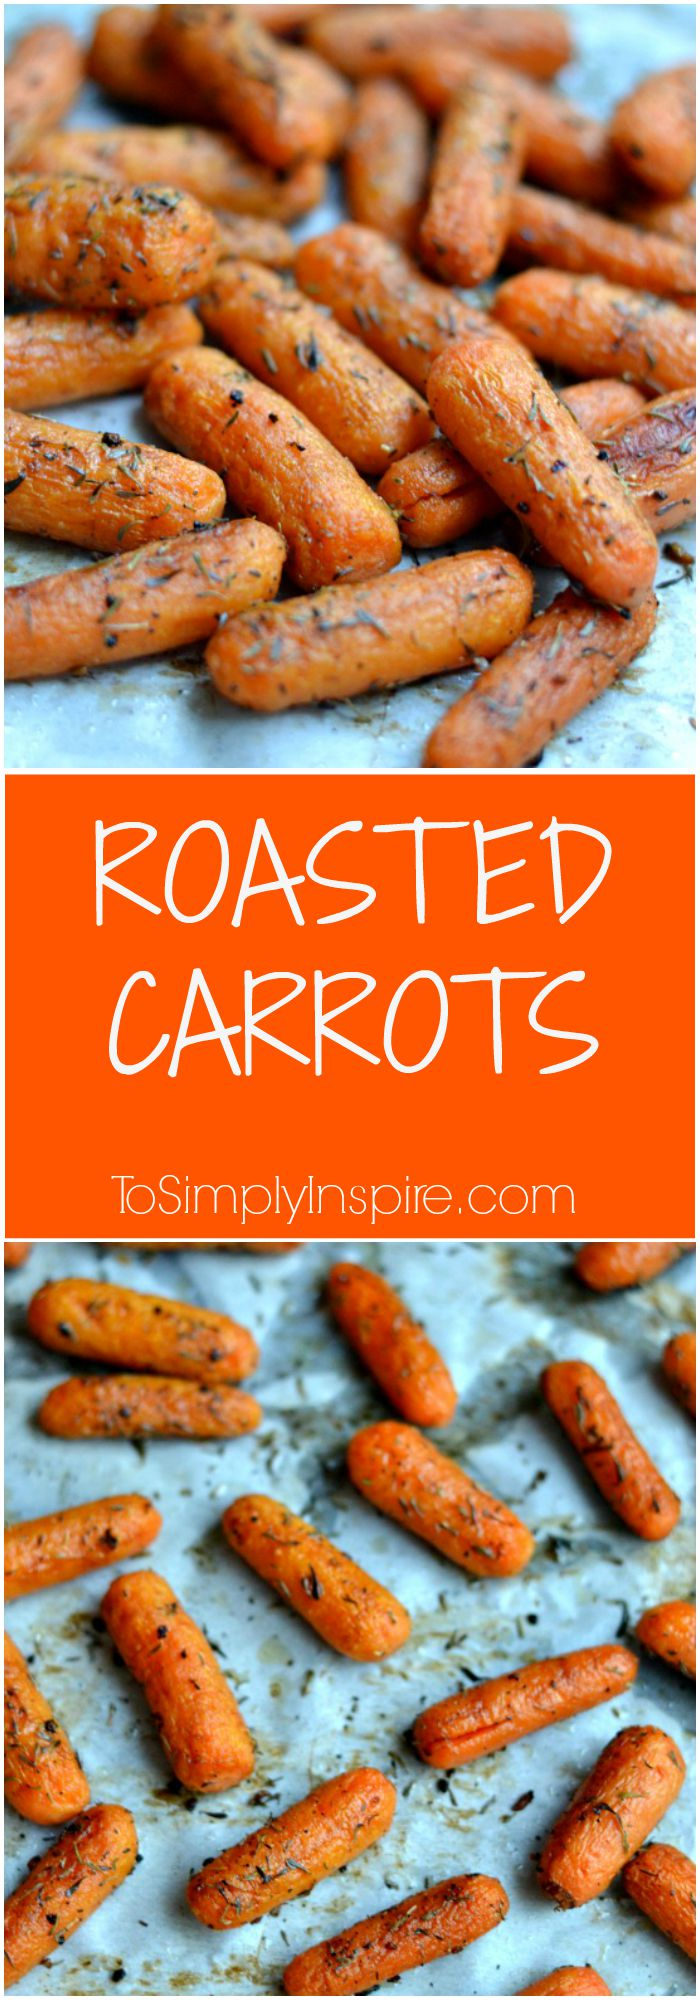 These Roasted Carrots are a fabulously simple and quick way to a another healthy side to any meal